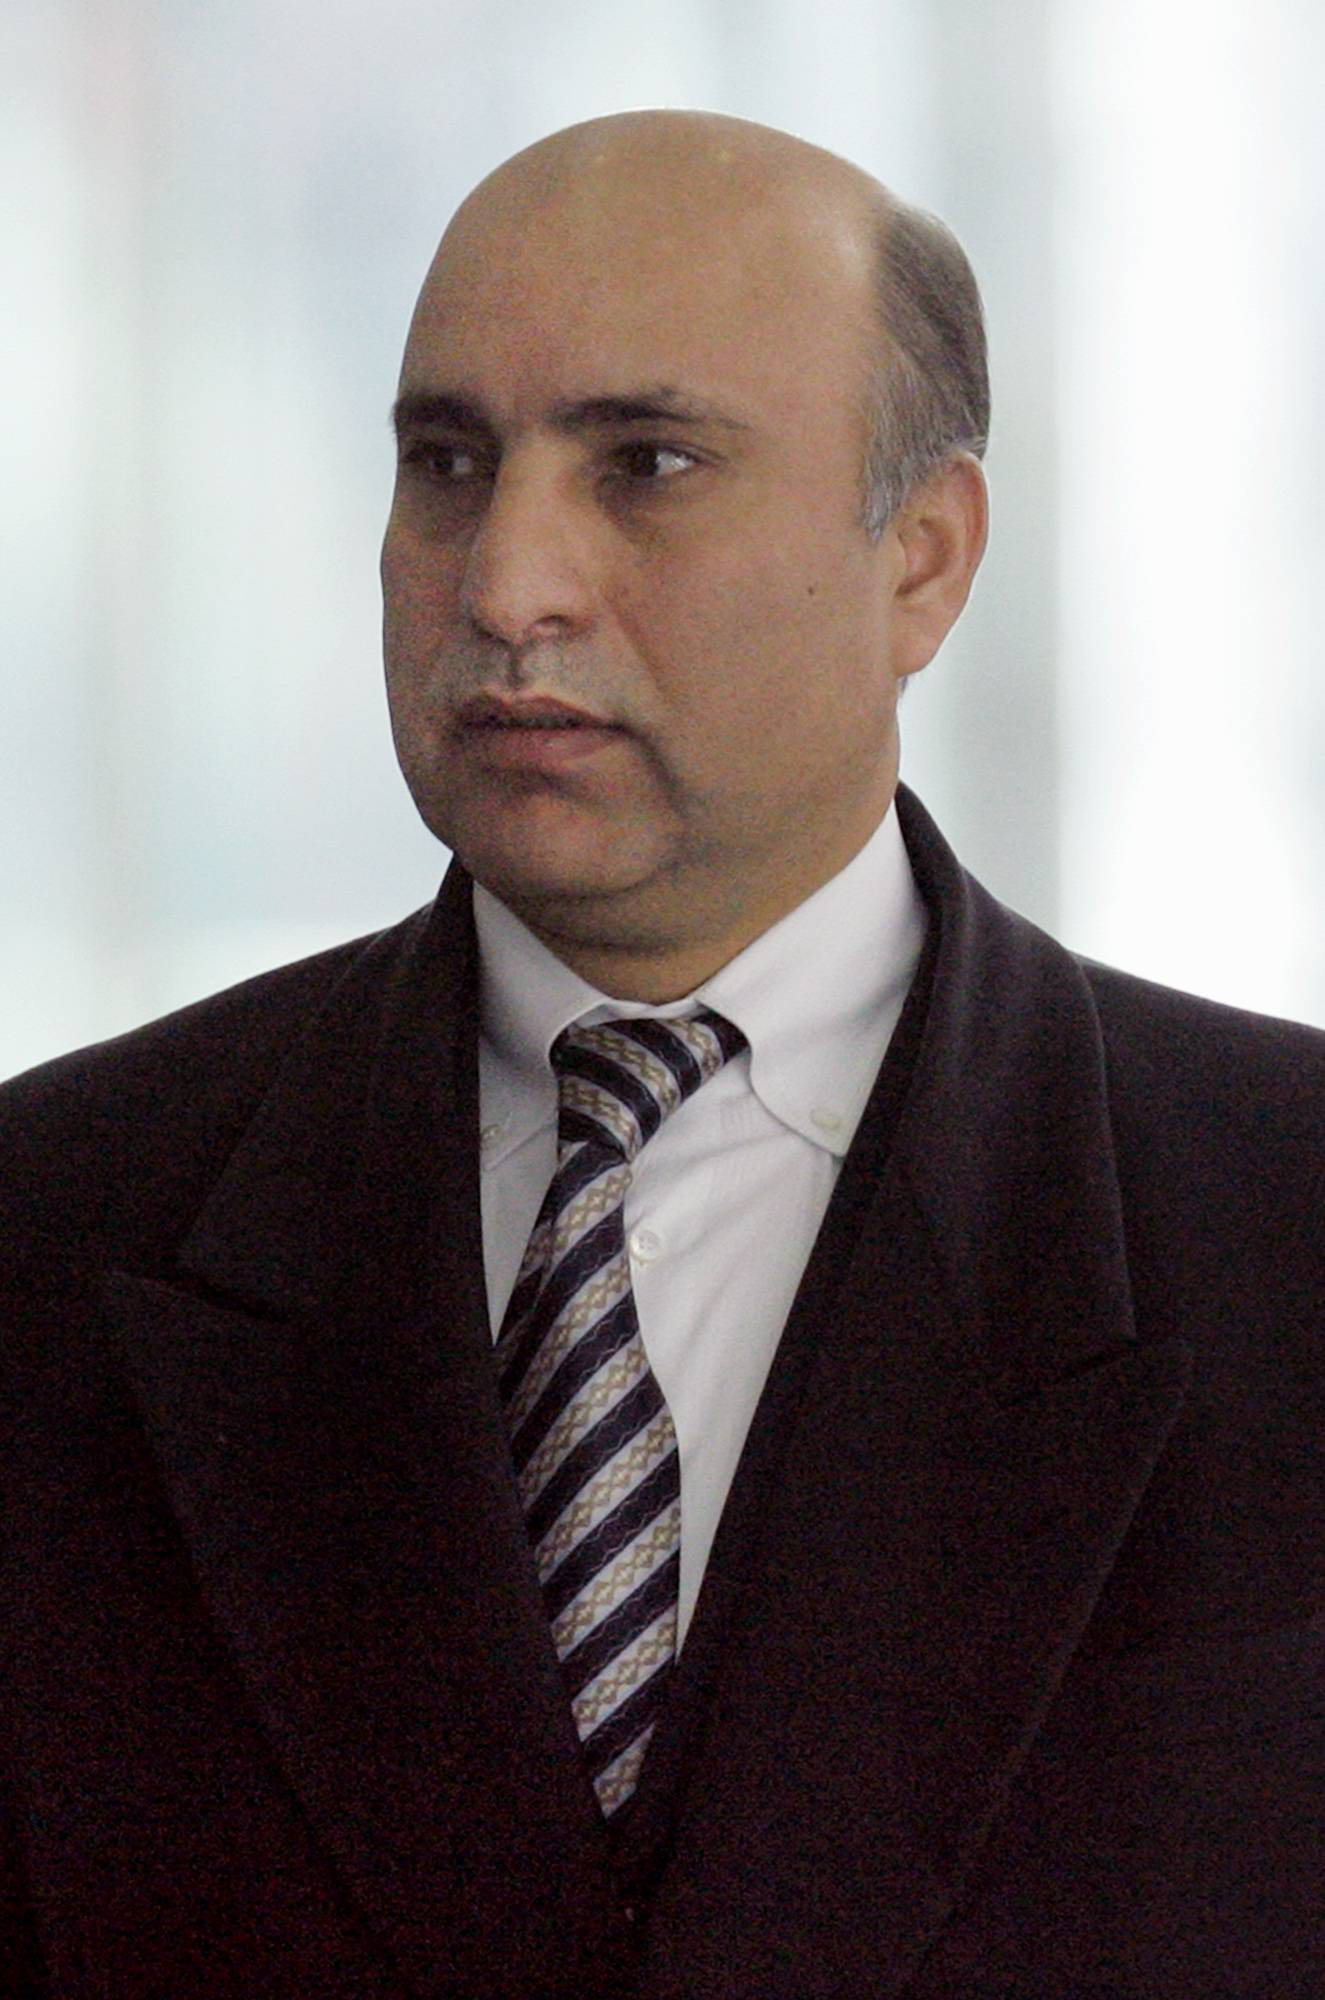 Tony Rezko. A decade ago, John Thomas agreed to wear a wire in the case against the political fundraiser.